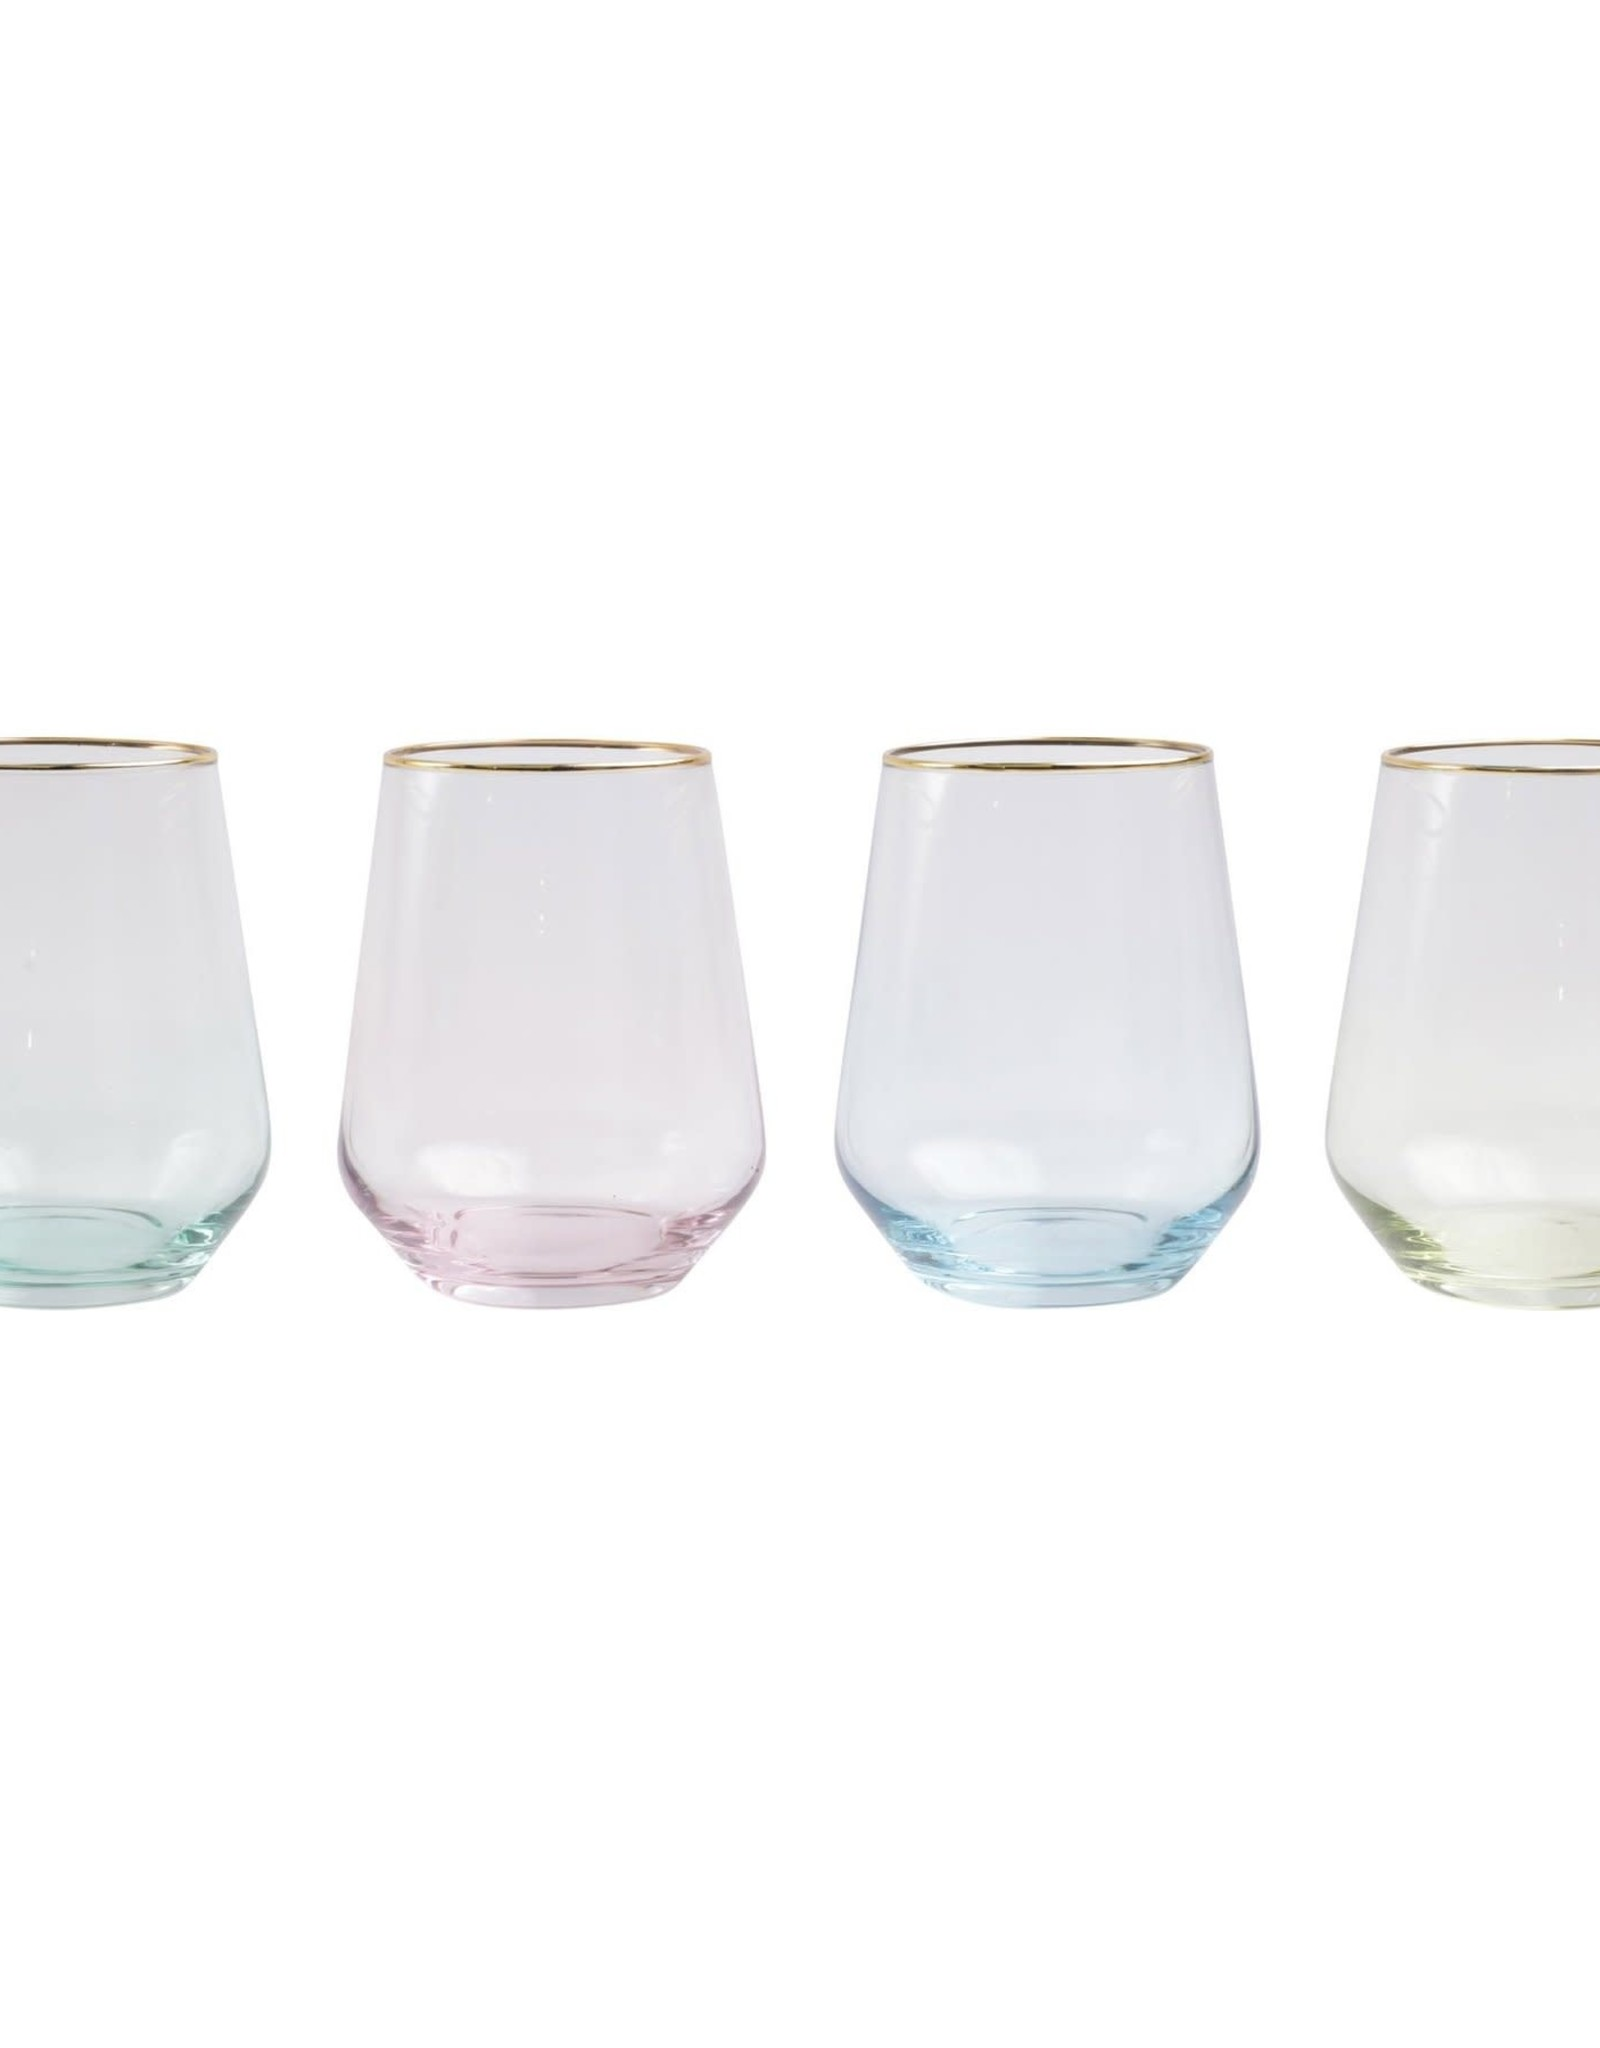 Vietri Set of 4 Rainbow Stemless Wine Glasses